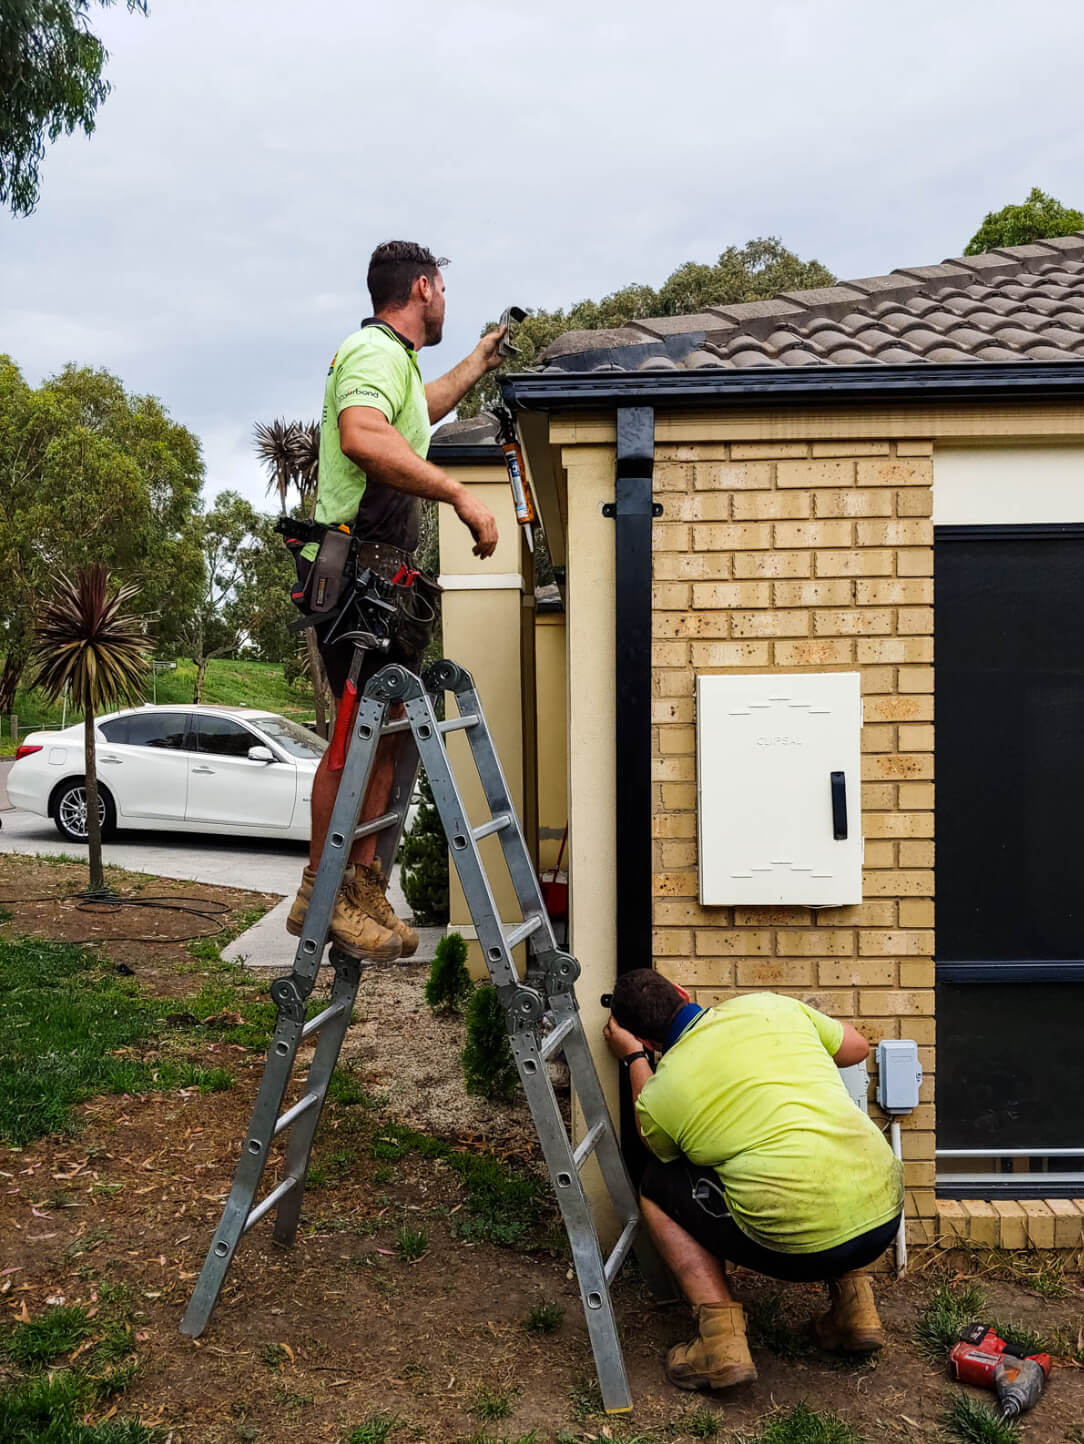 The supreme roof plumbing team at work in the Melbourne suburbs